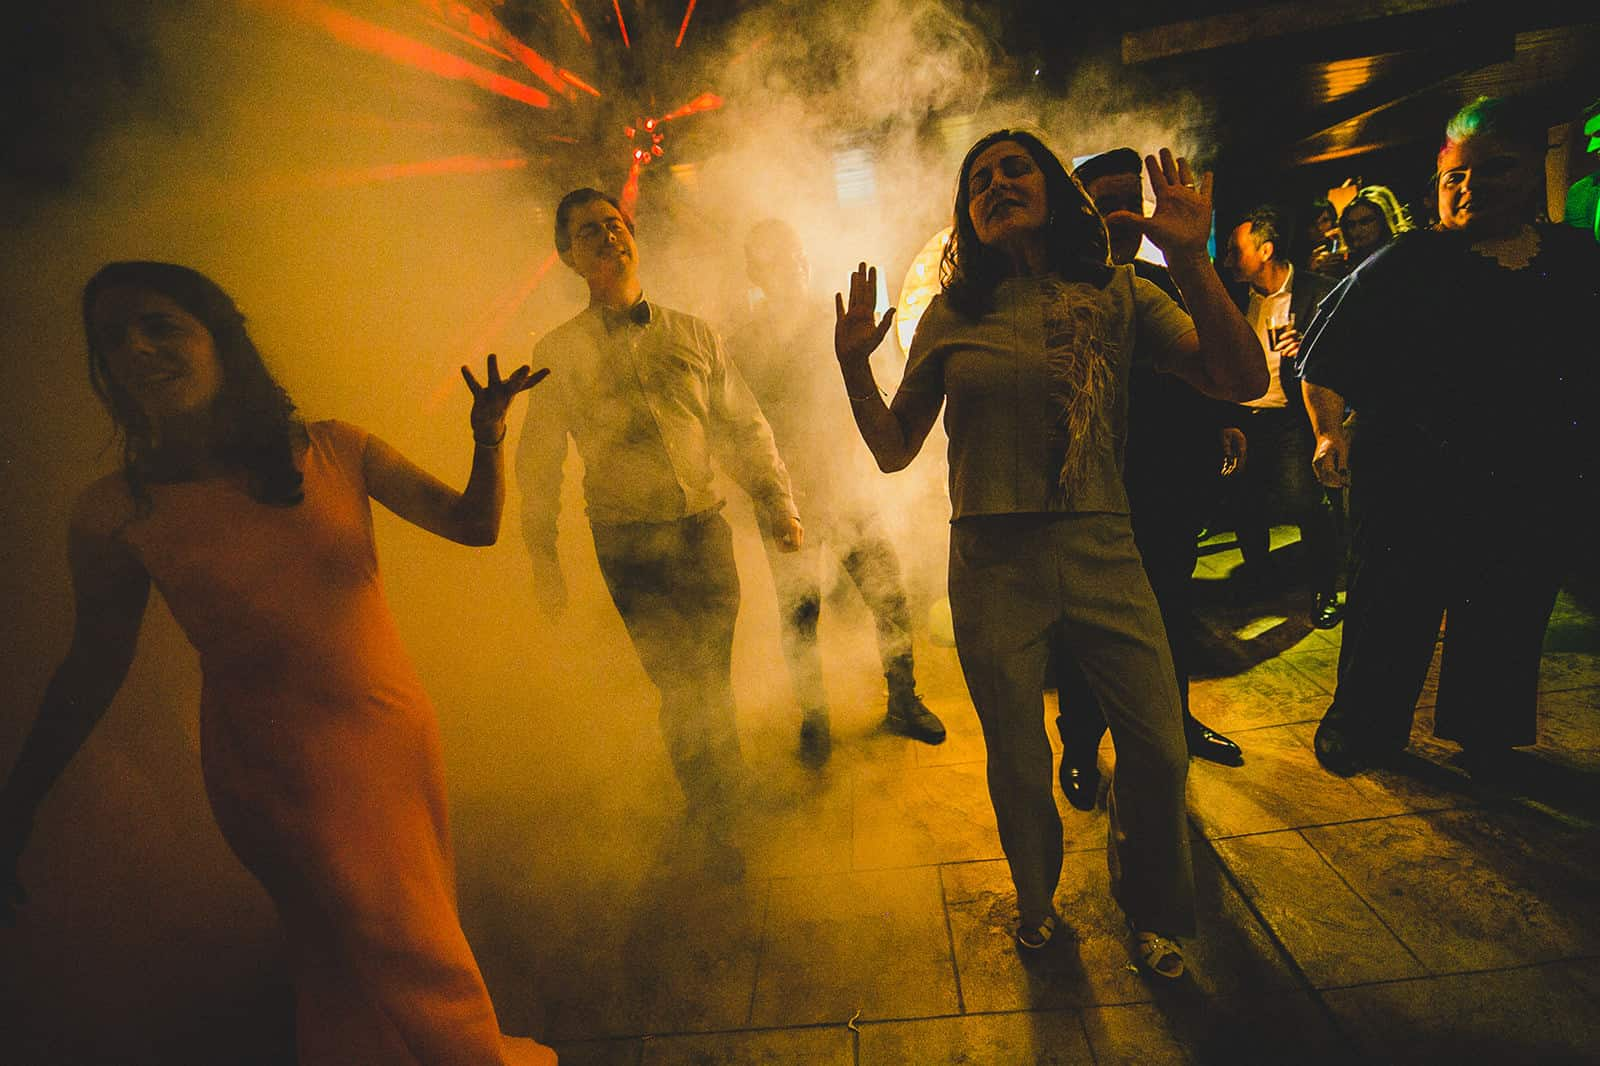 people dancing in the middle of the smoke bomb